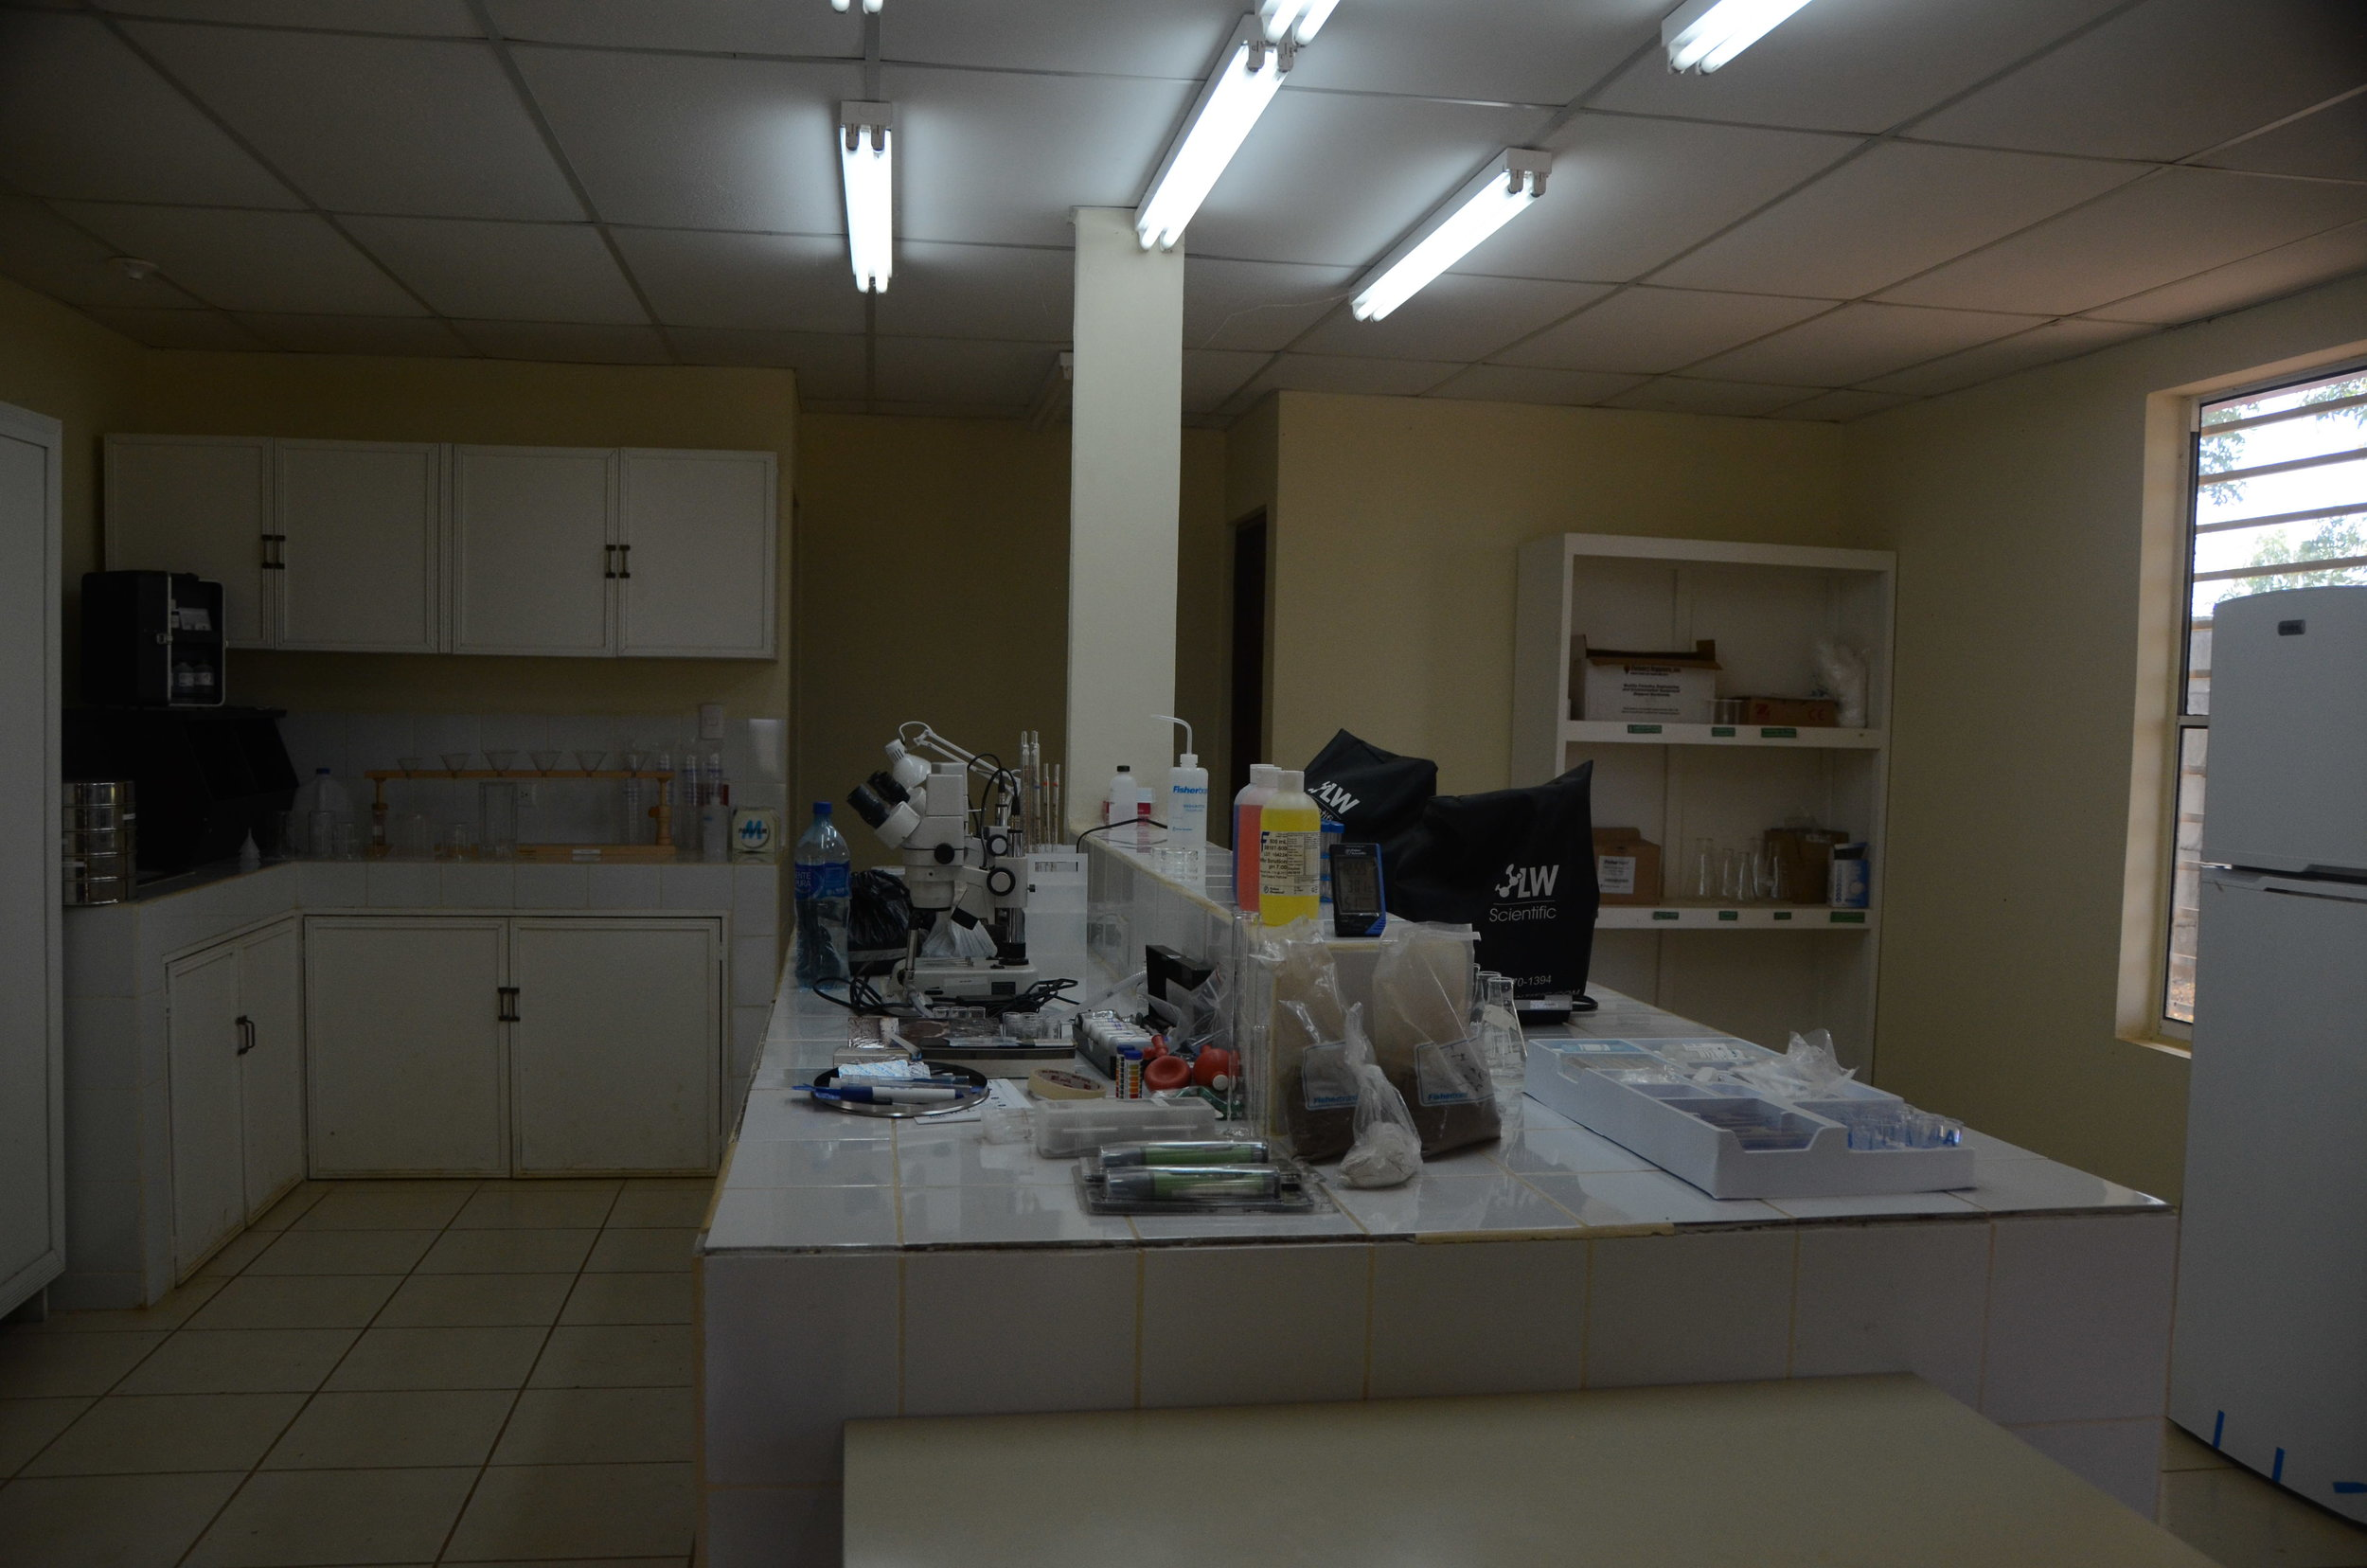 And lastly, this is the lab where the women are learning the science of essential oils, soaps, and lotions. I wish I would have taken more photos of the outside of the buildings, but you get the idea.